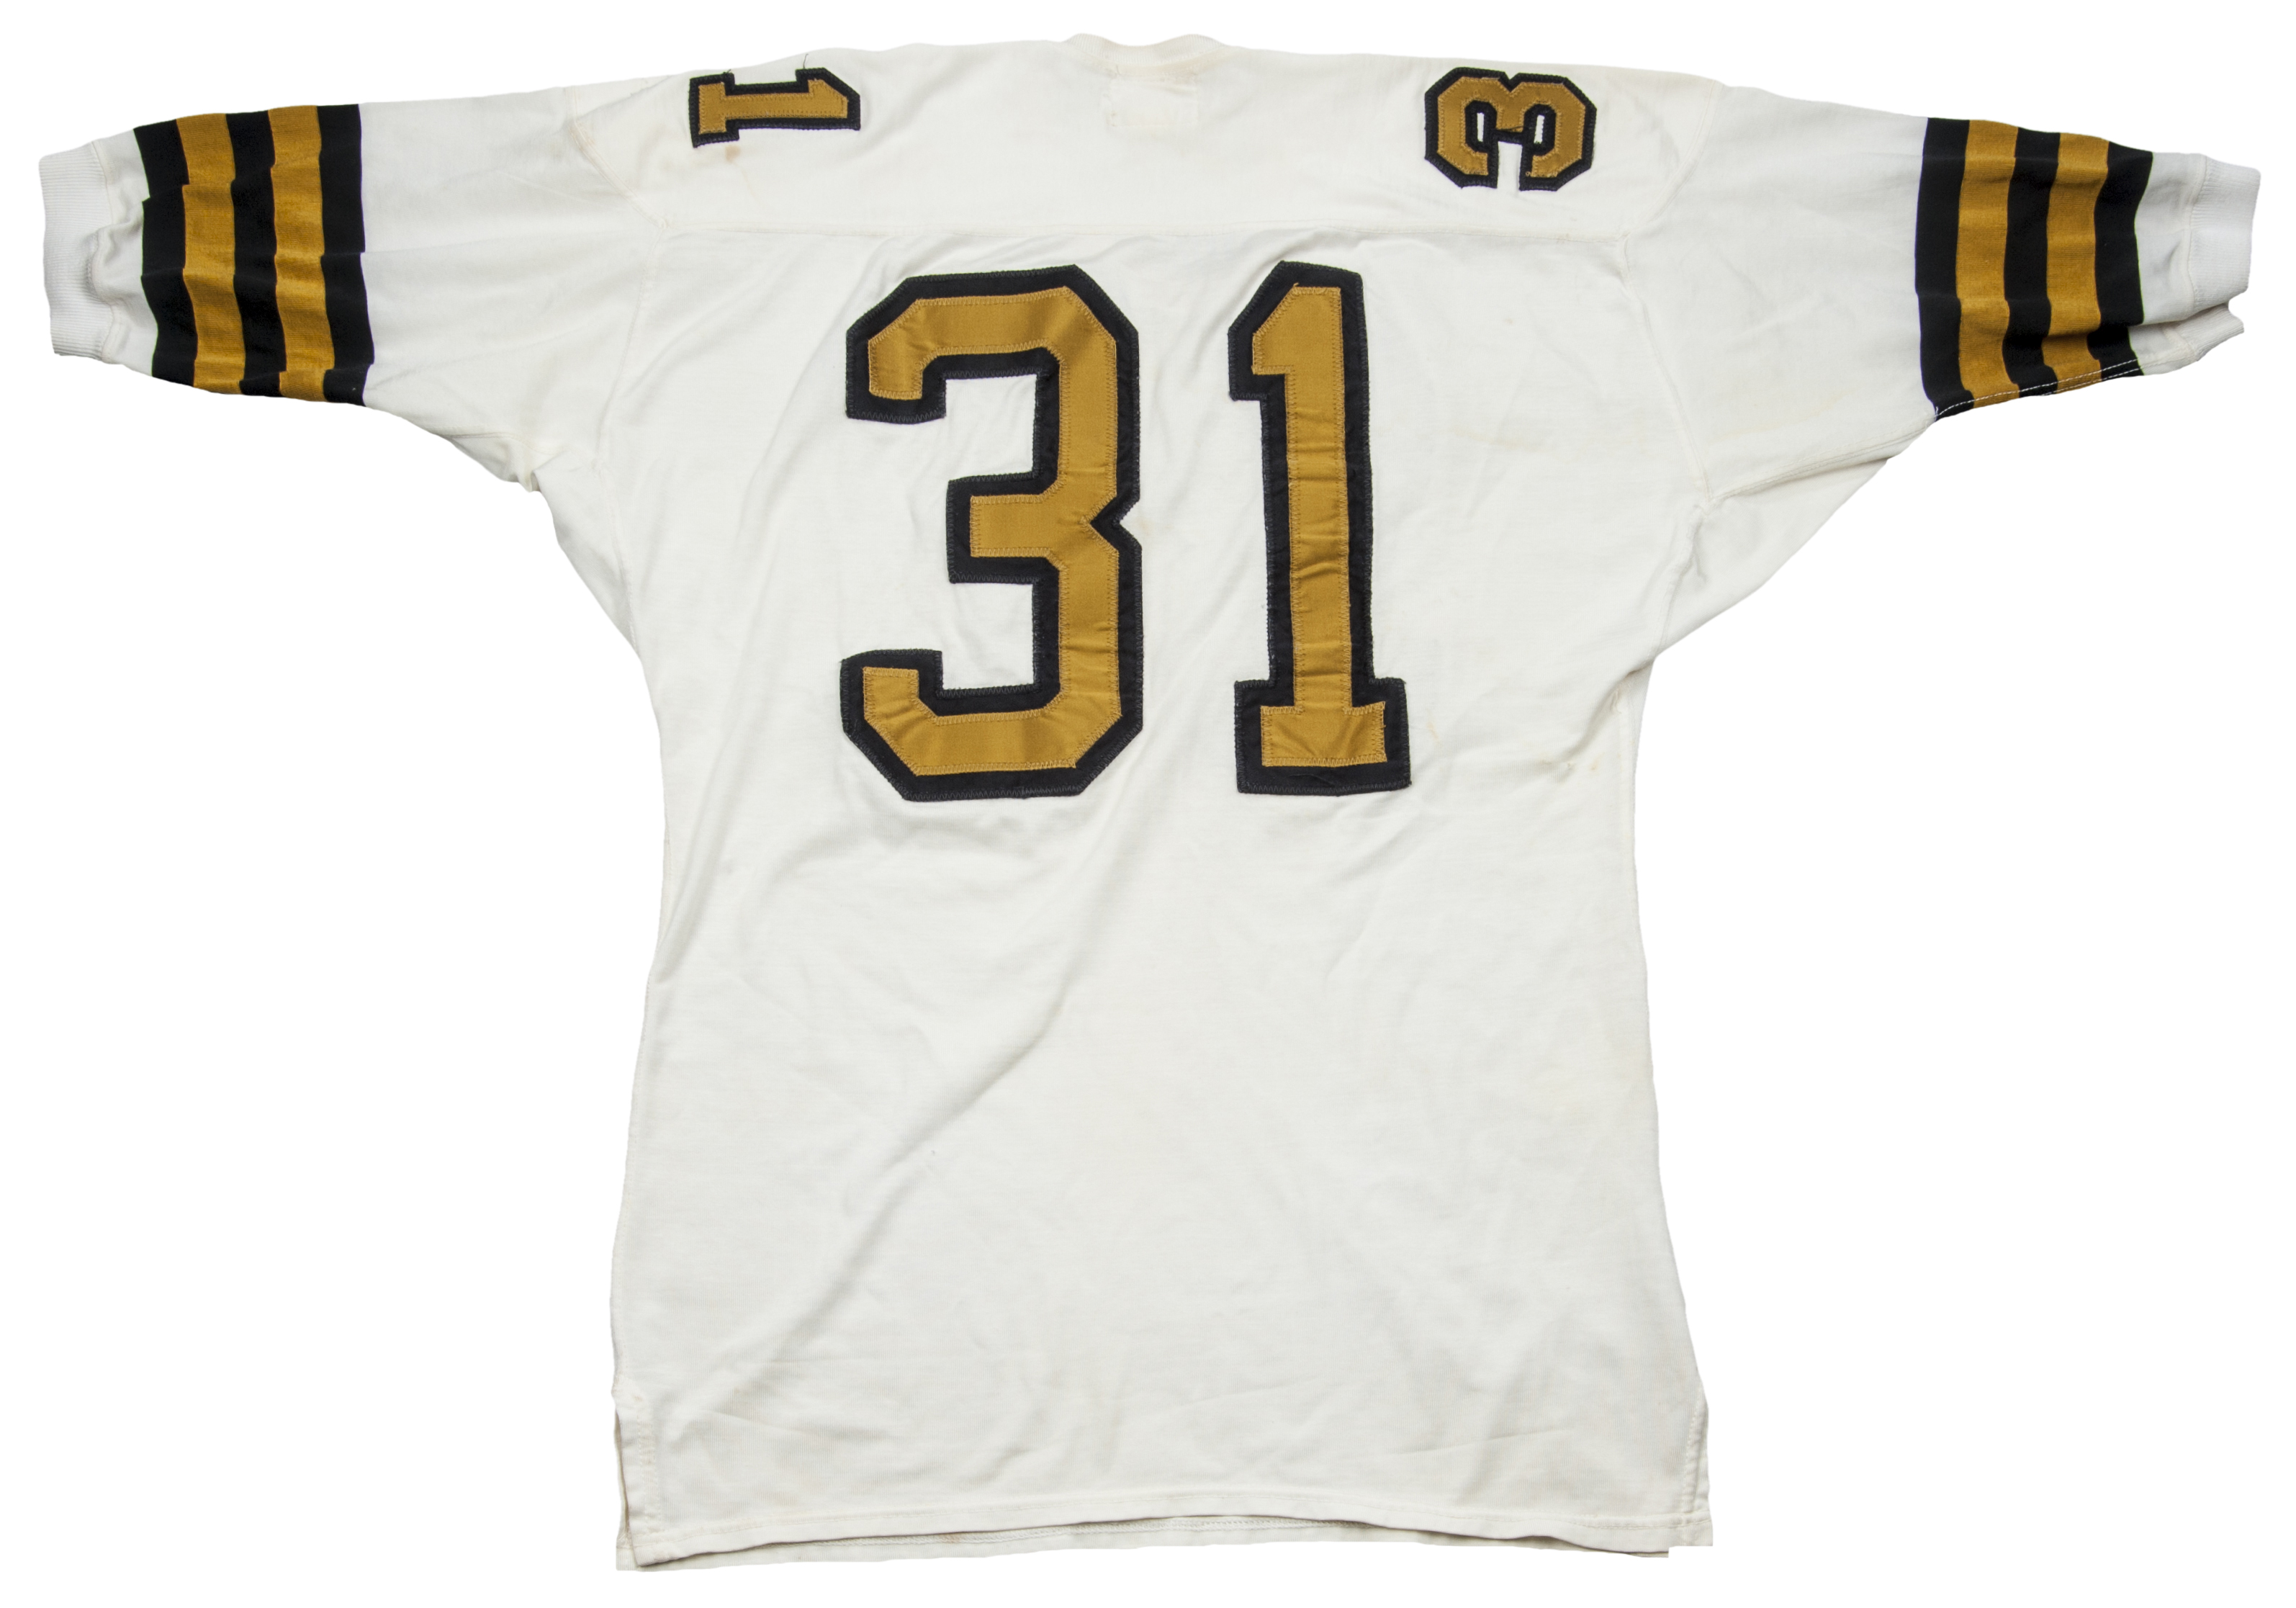 022c18de 1967 Jim Taylor Game Used New Orleans Saints White Jersey (MEARS A9.5)